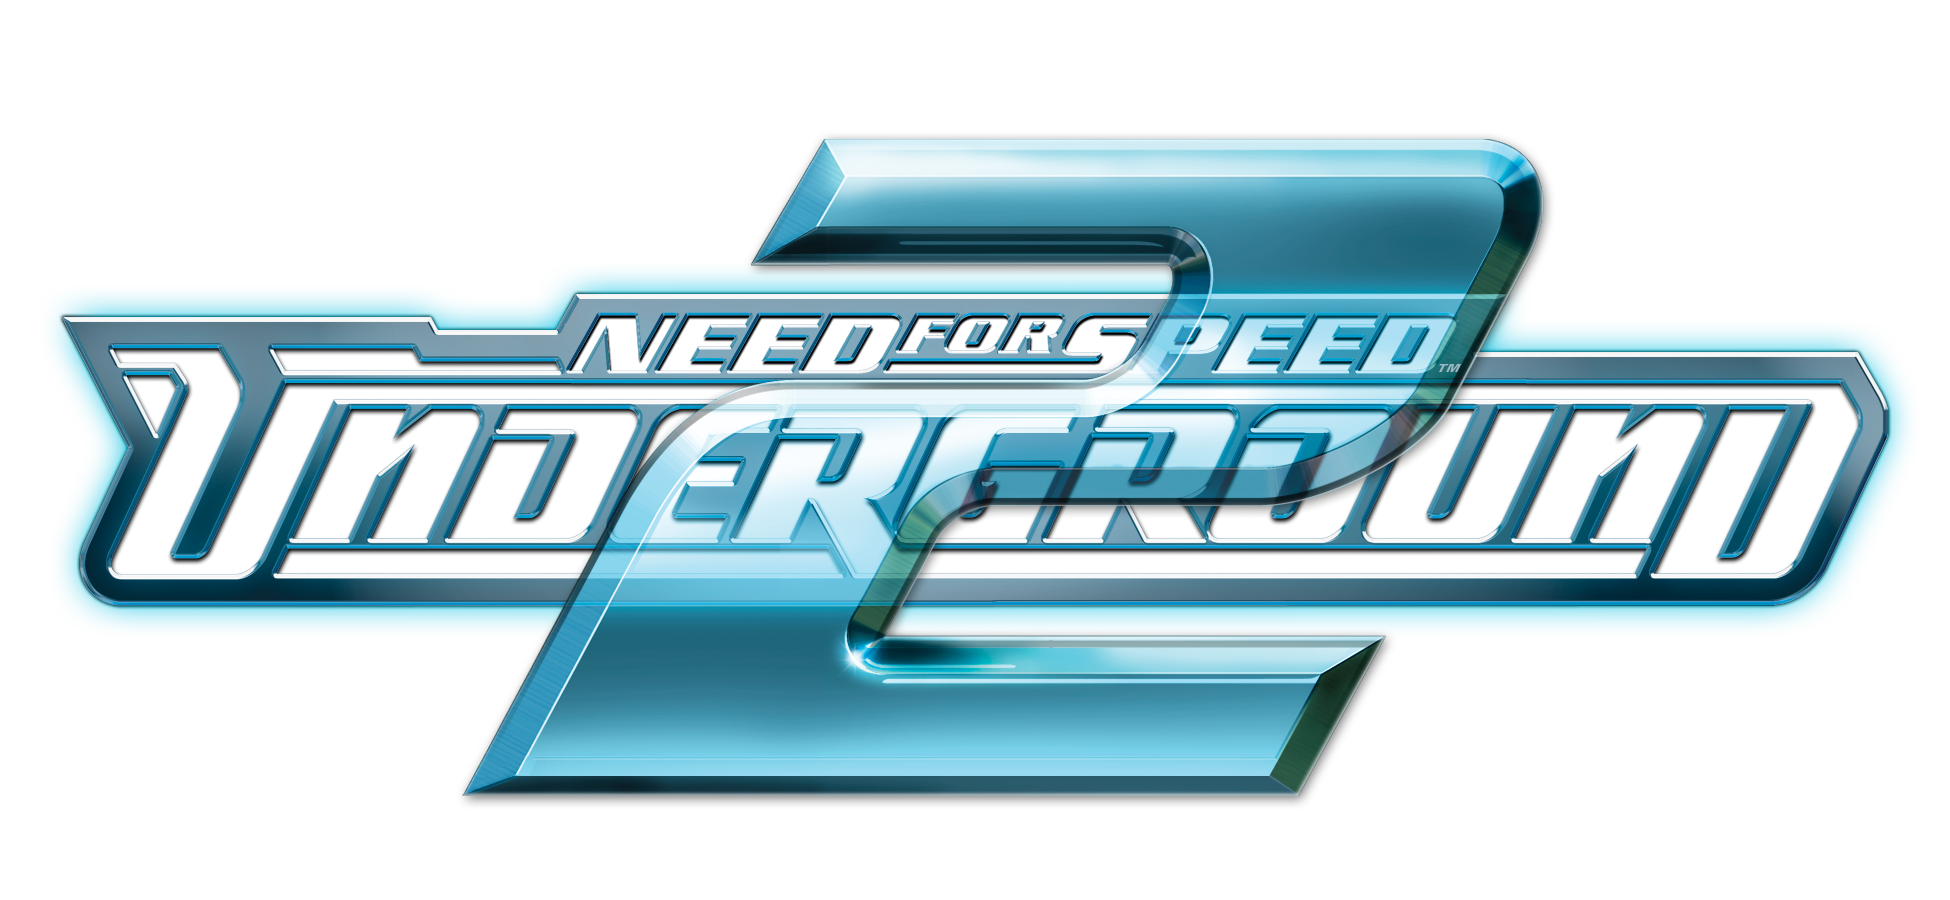 need-for-speed-underground-2-logo.png